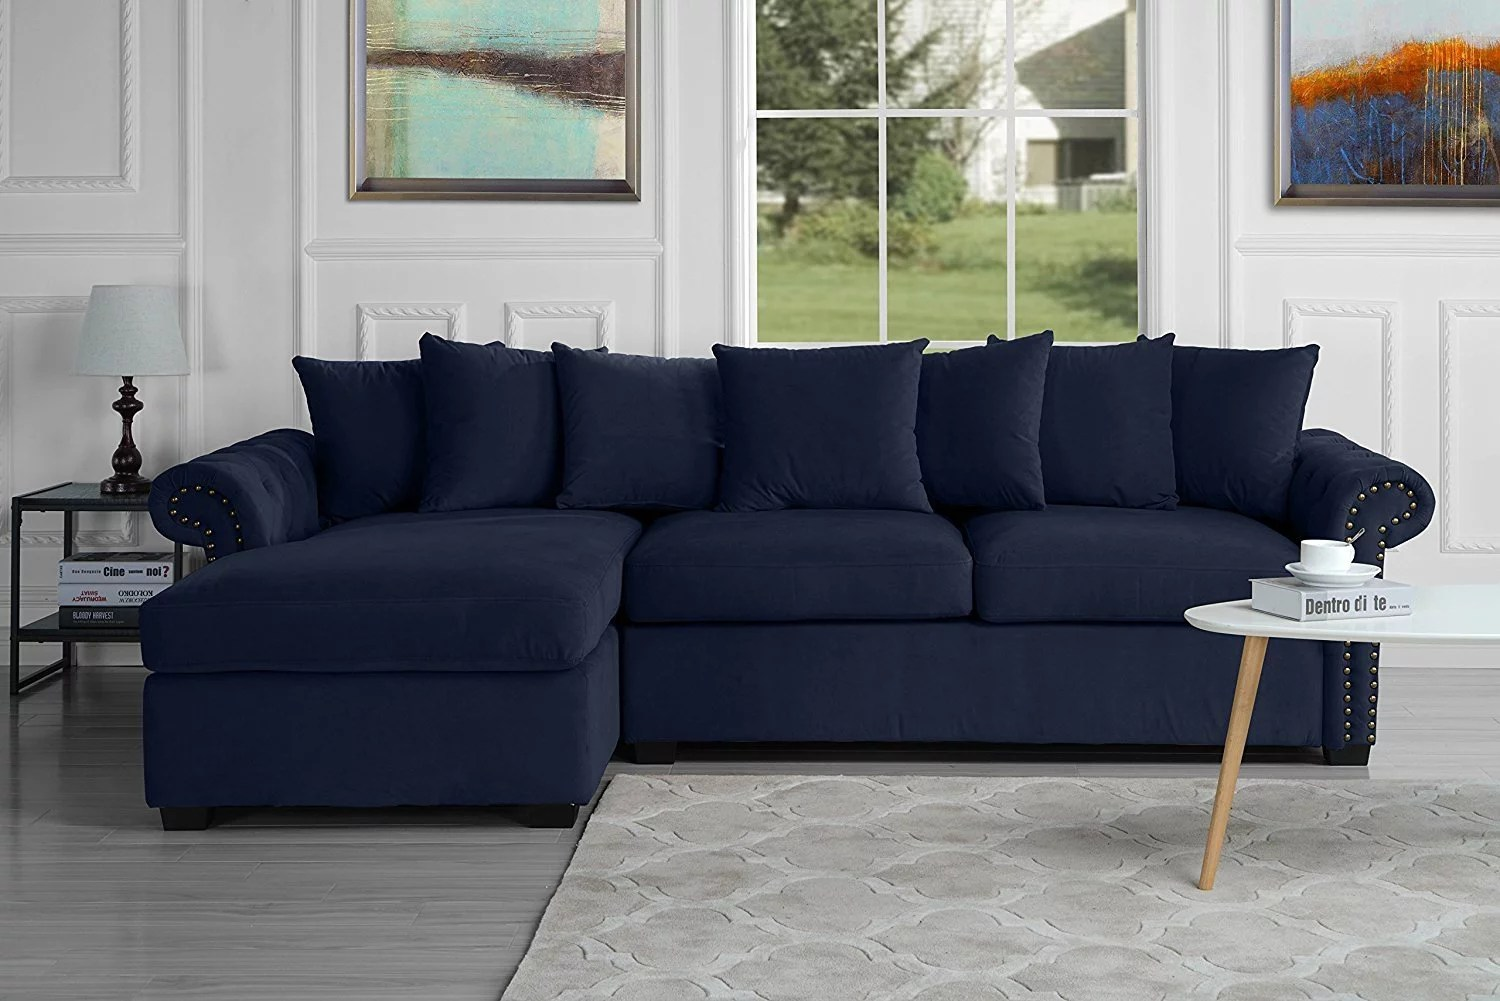 modern large tufted velvet sectional sofa scroll arm l shape couch navy blue